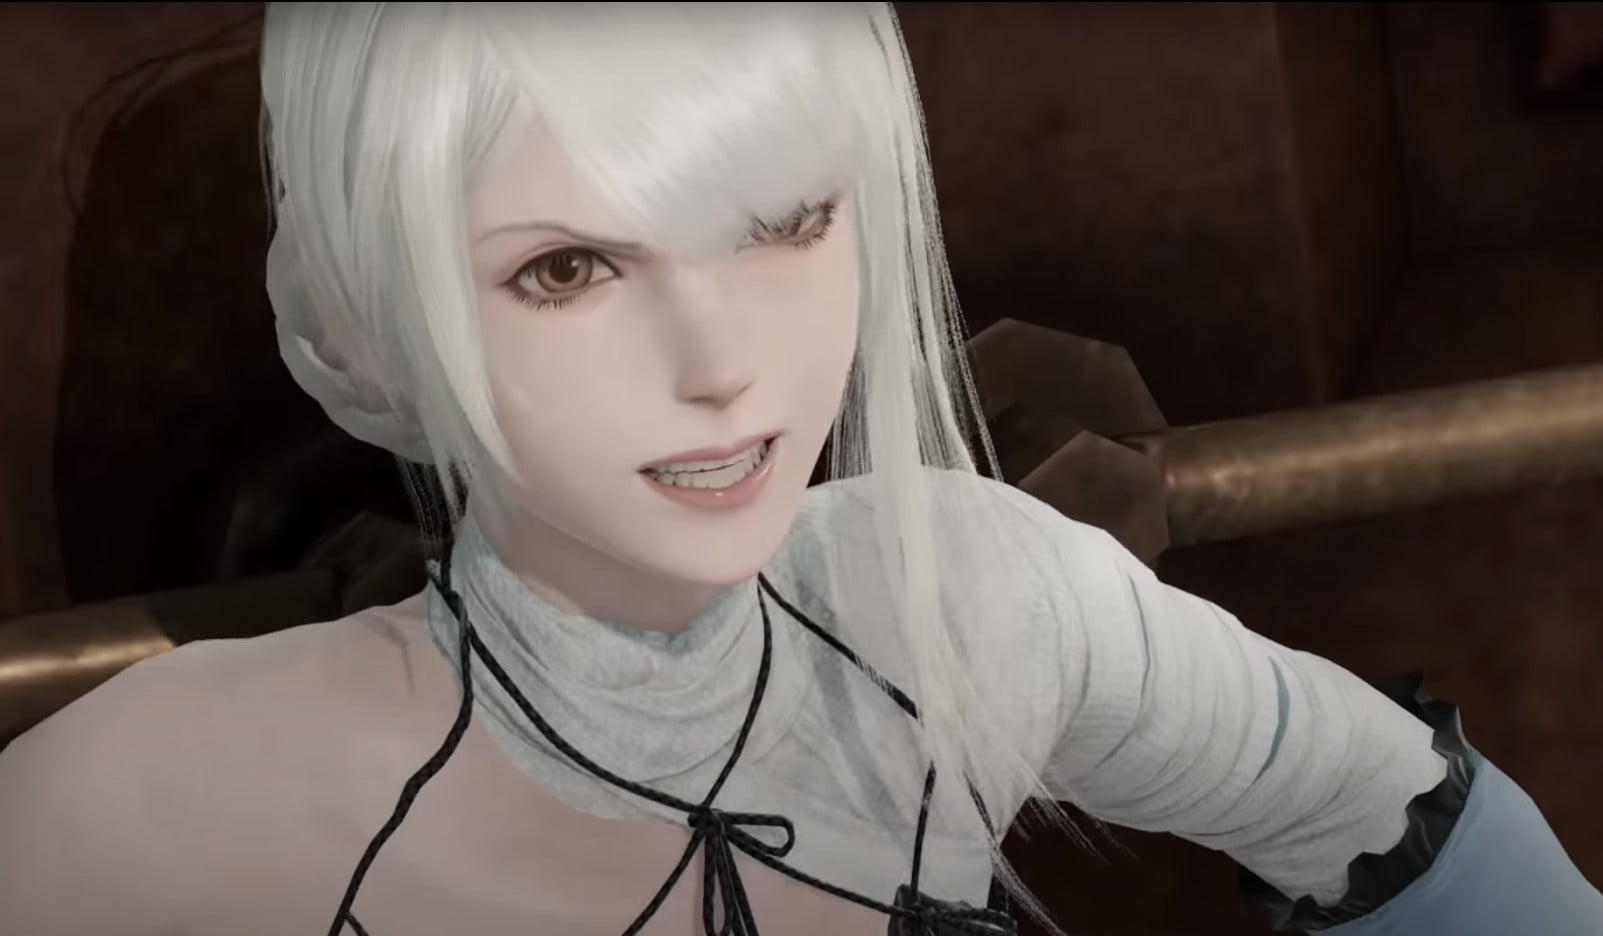 Kaine in NieR Replicant Remake